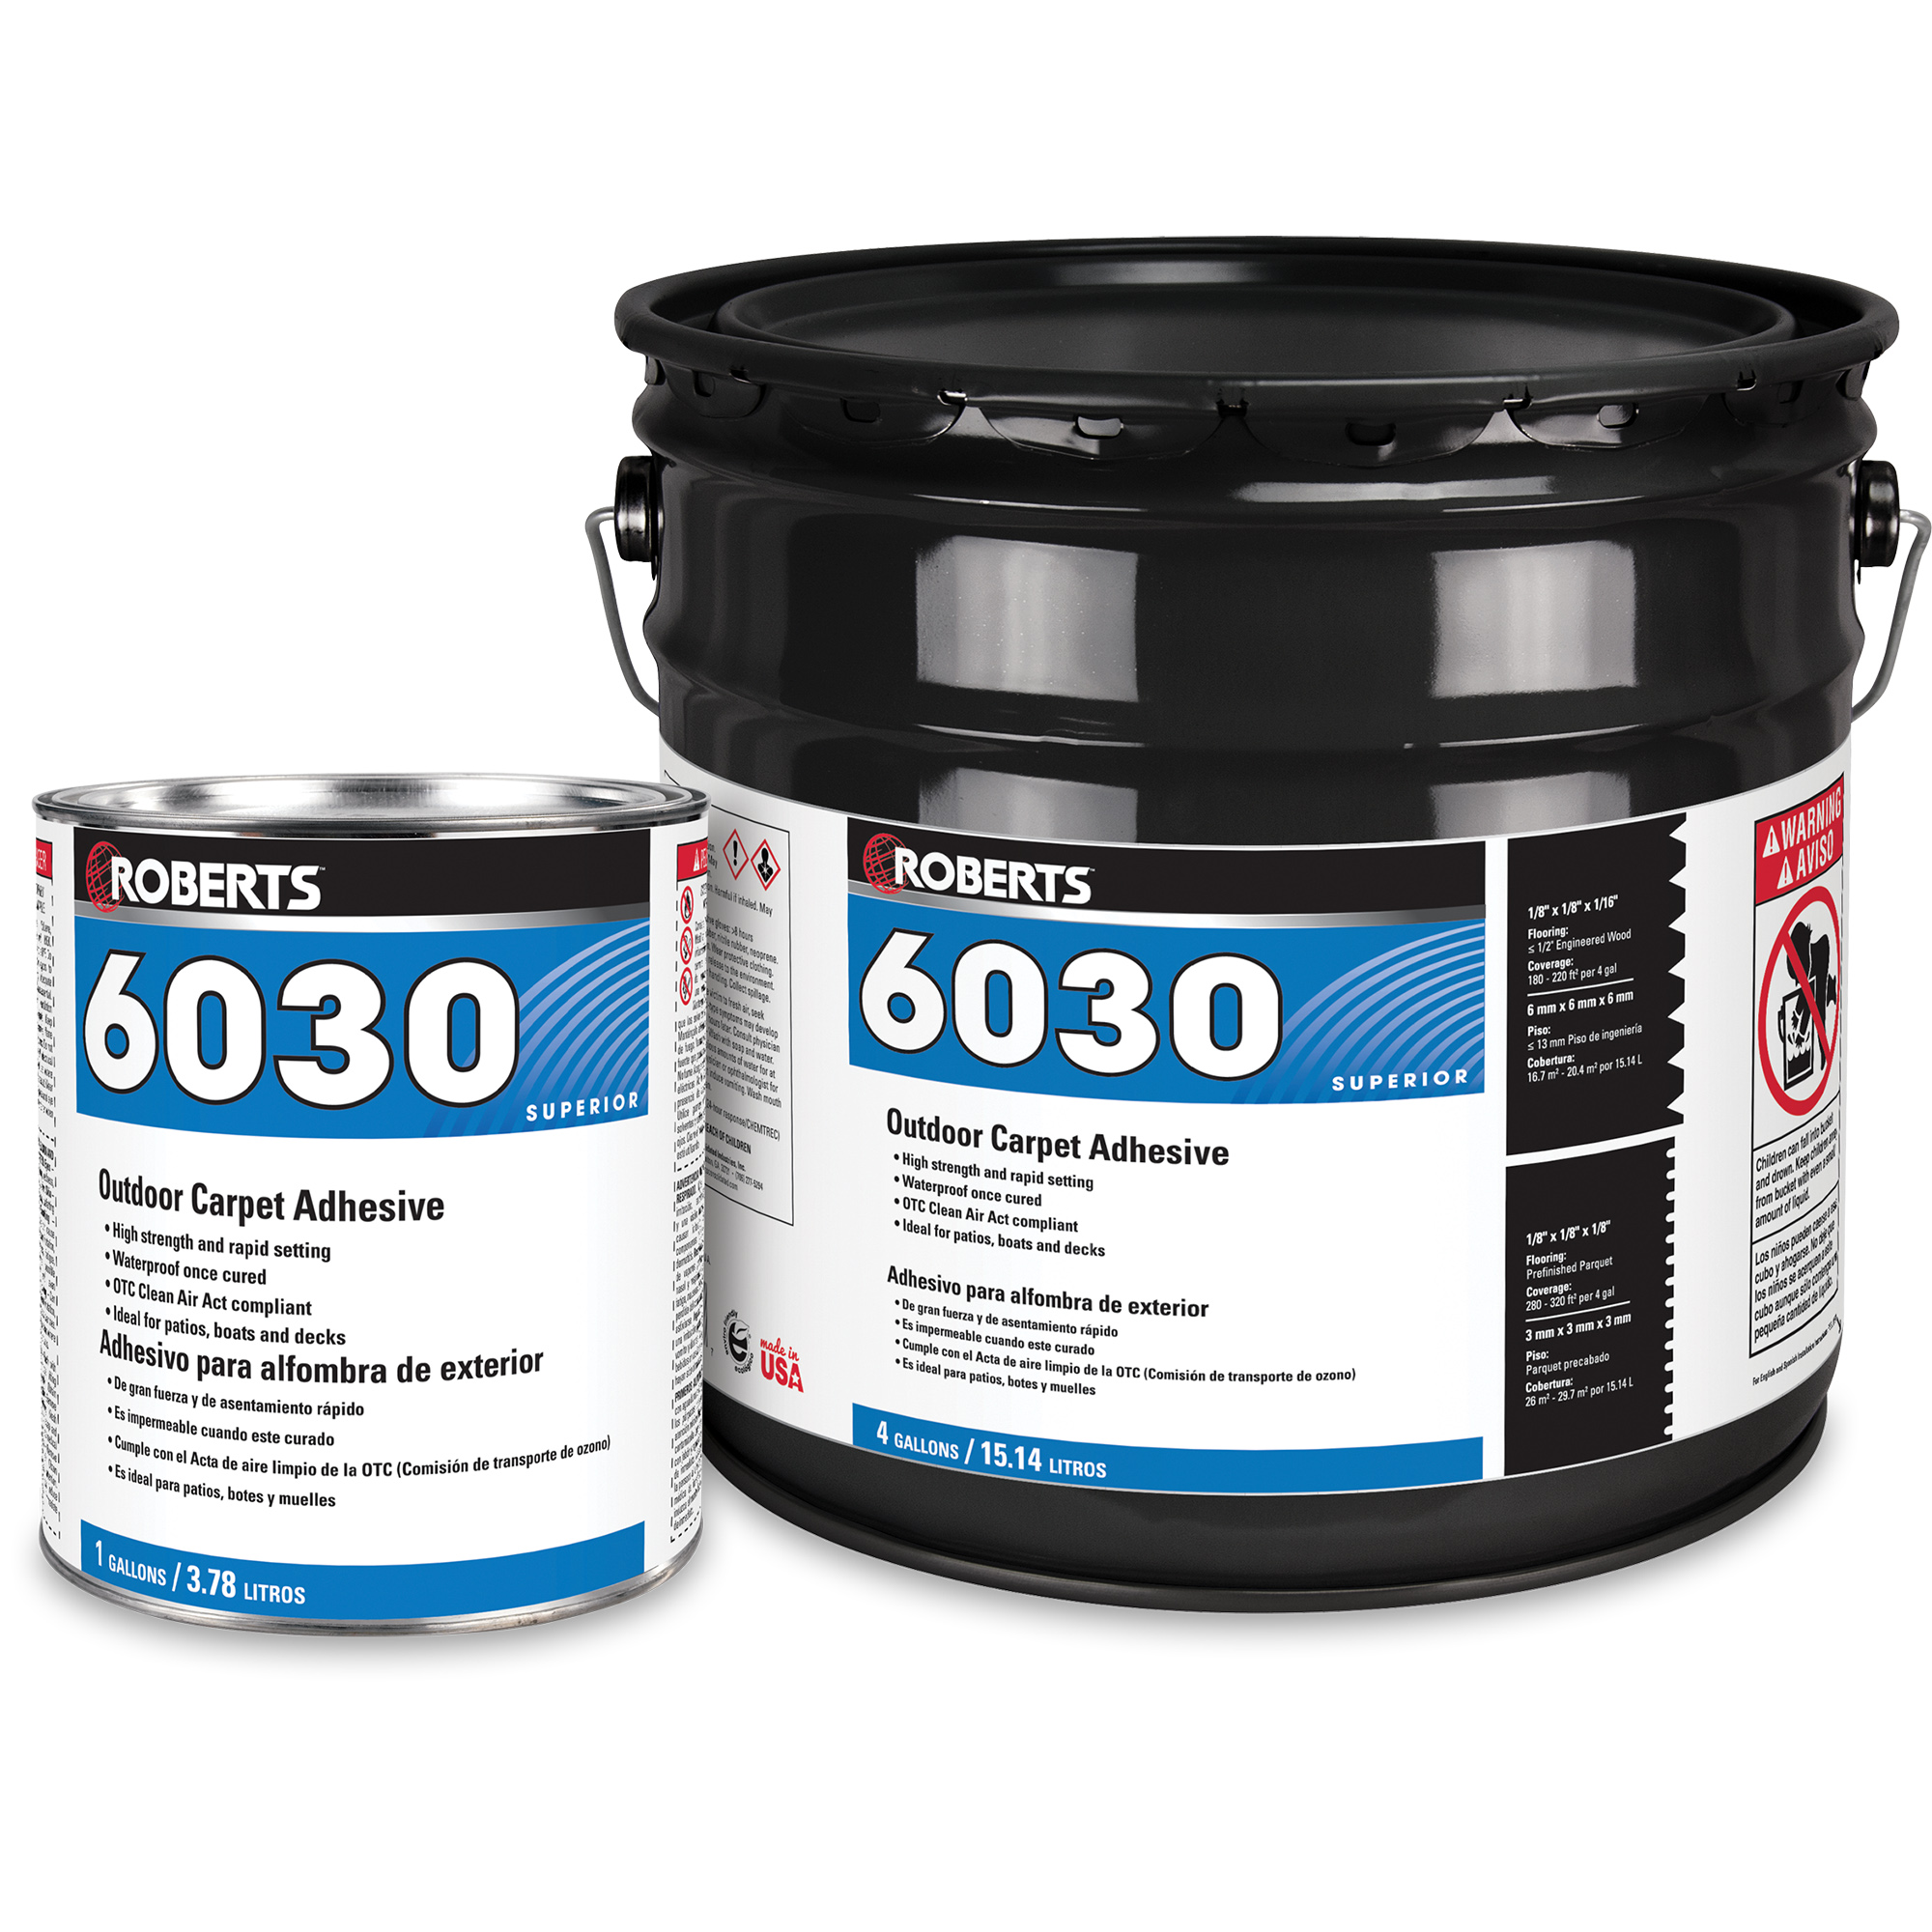 Discontinued Outdoor Carpet Adhesive